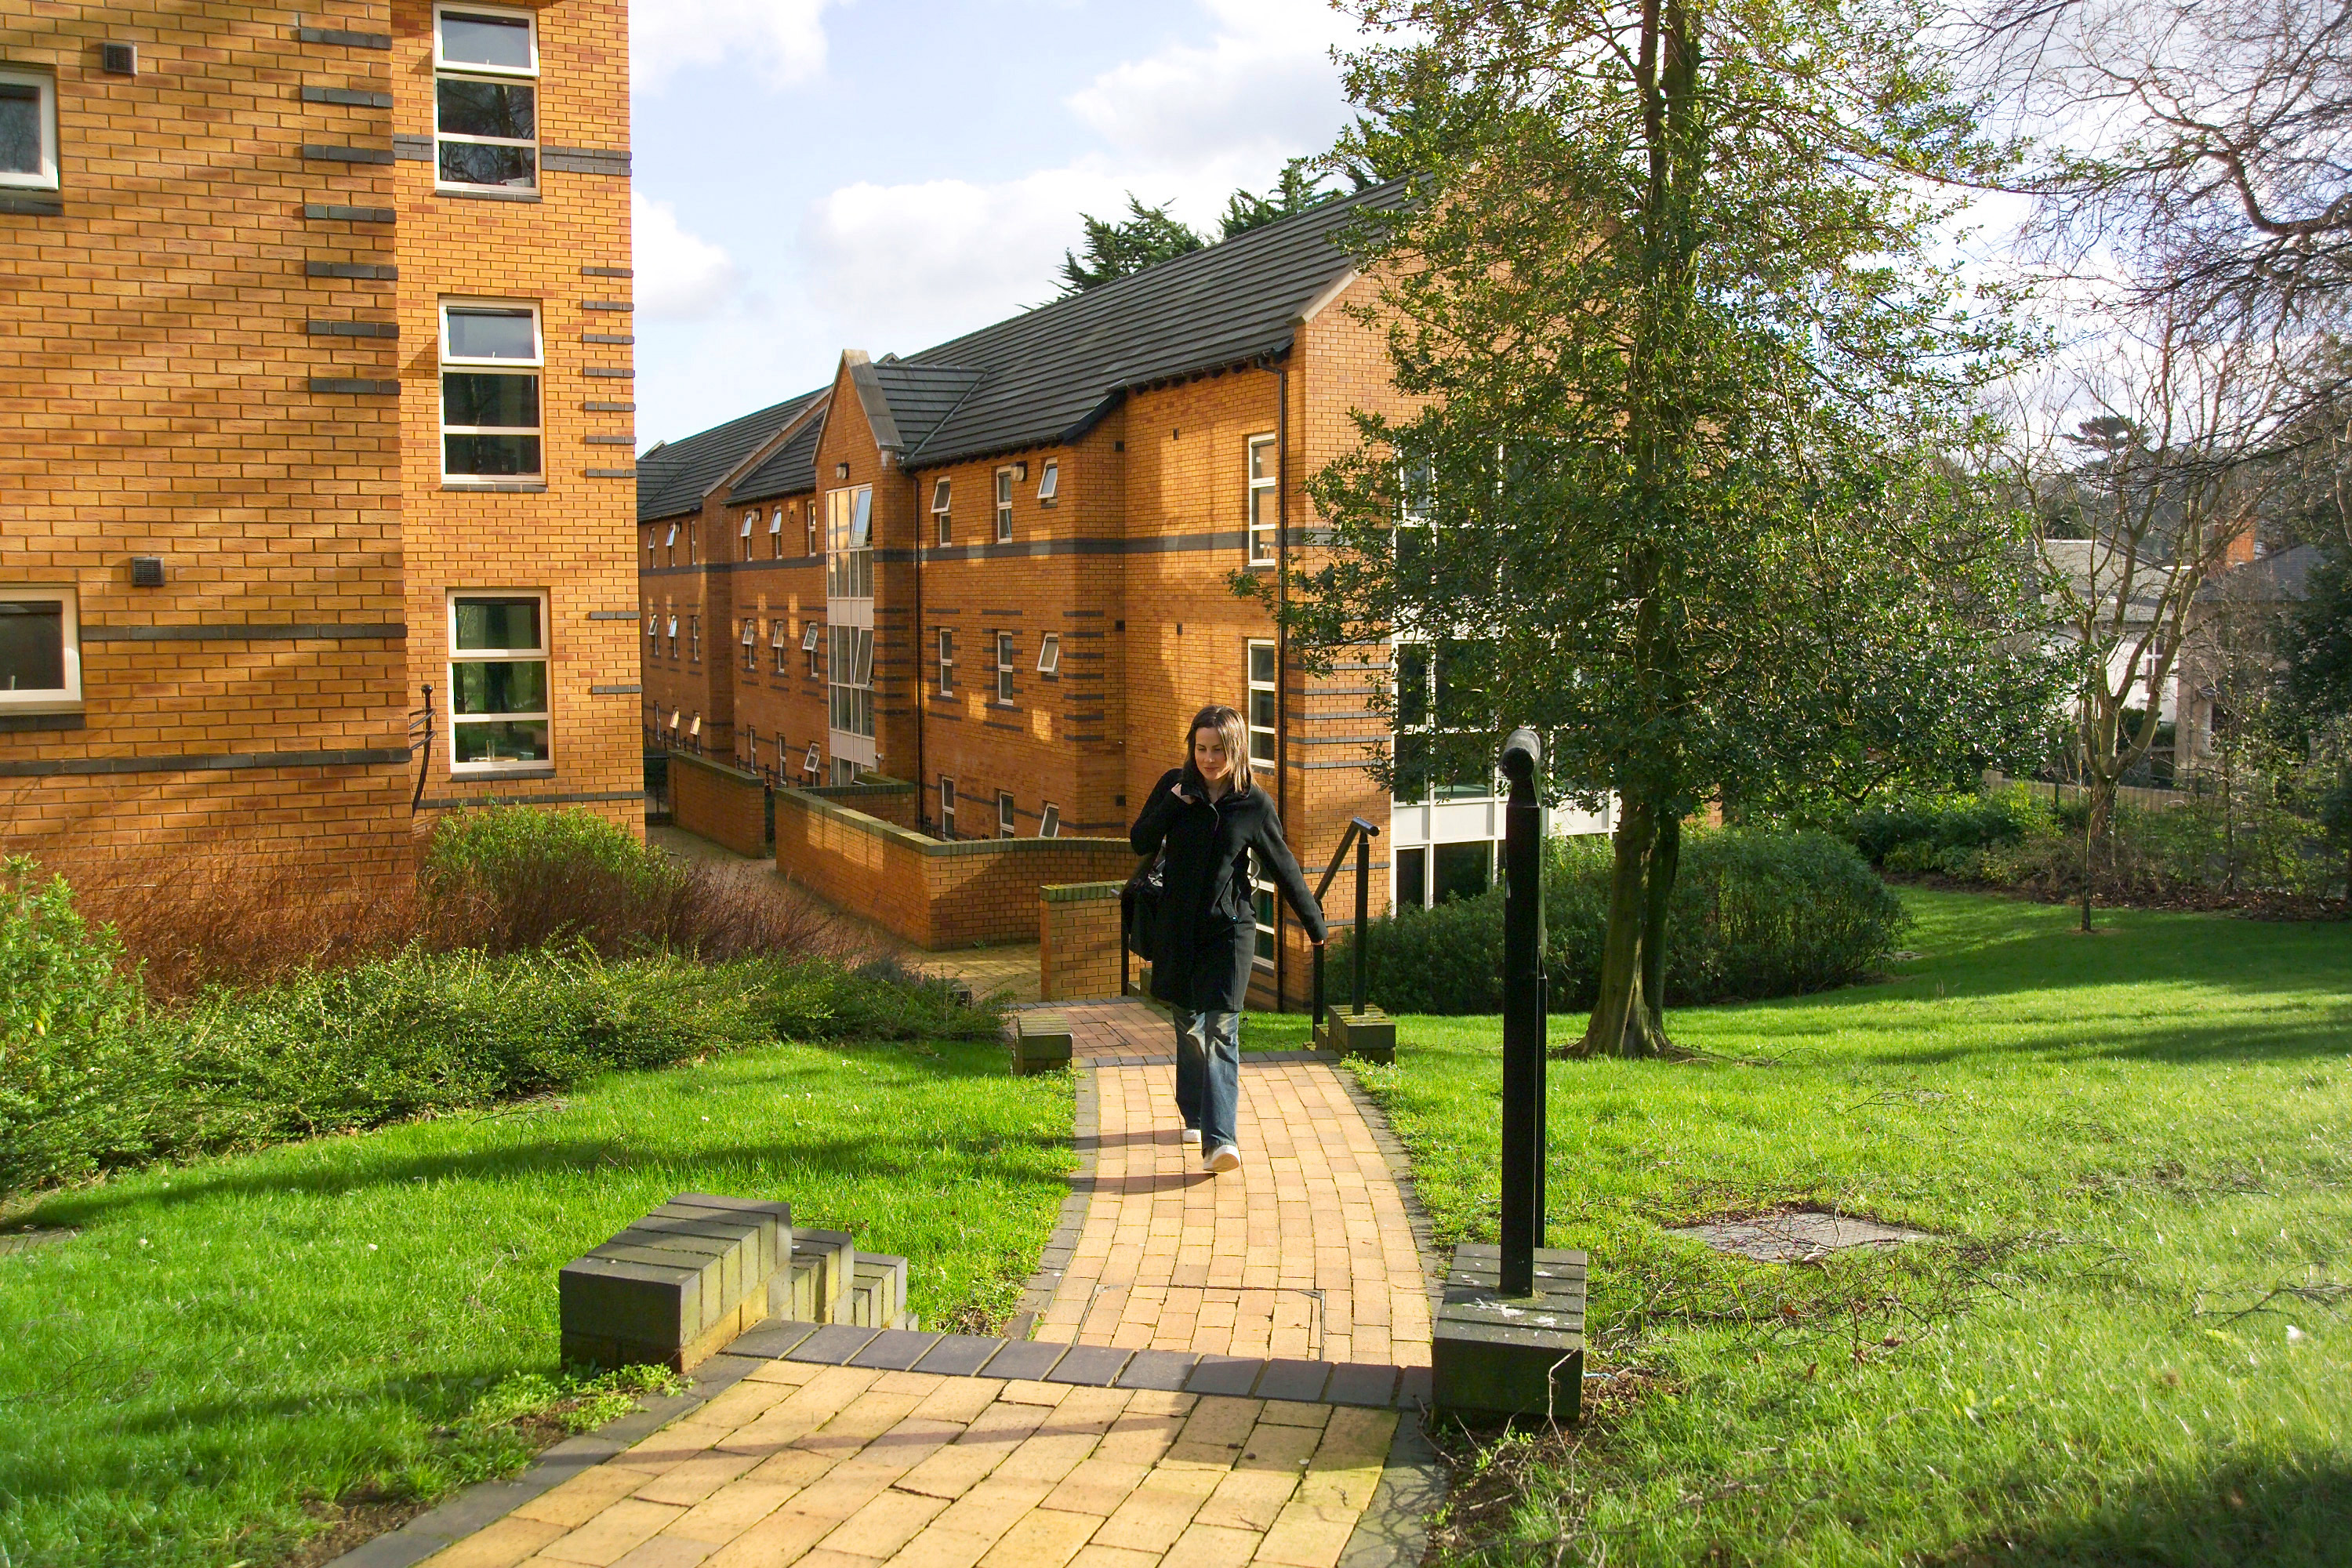 Elms Village student residences at Queen's University Belfast